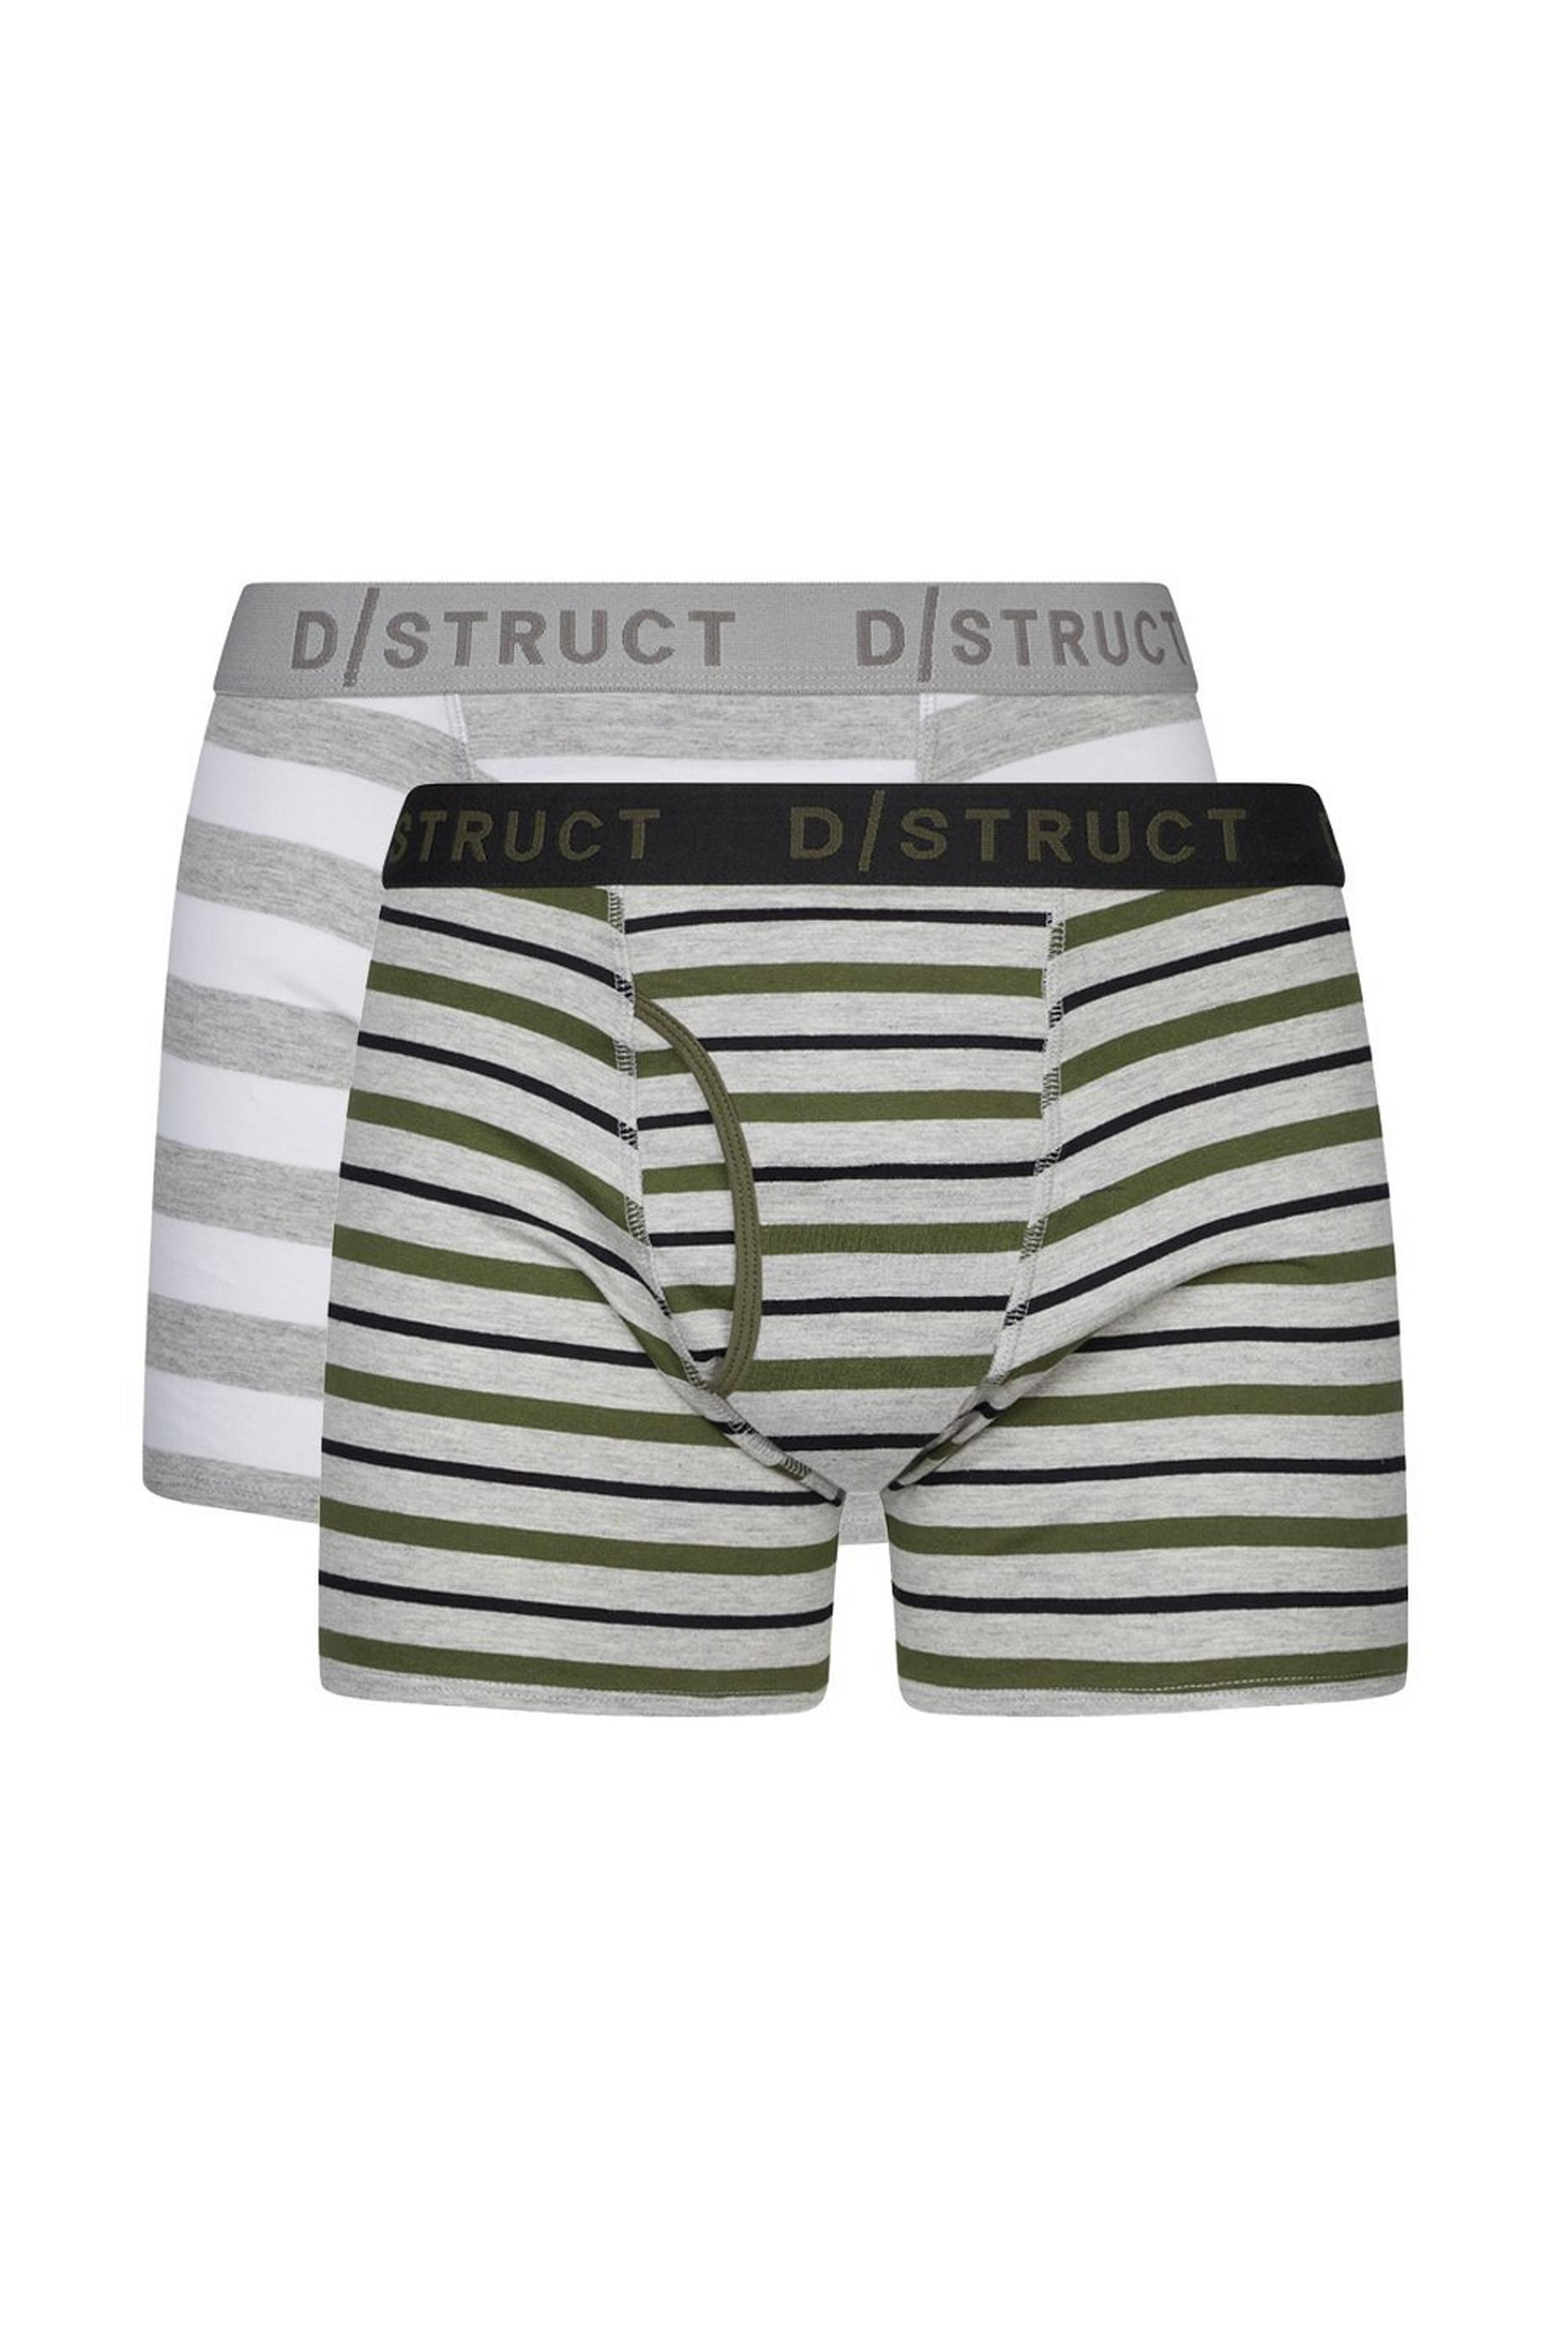 2 Pack Grey and Khaki Stripe Trunks